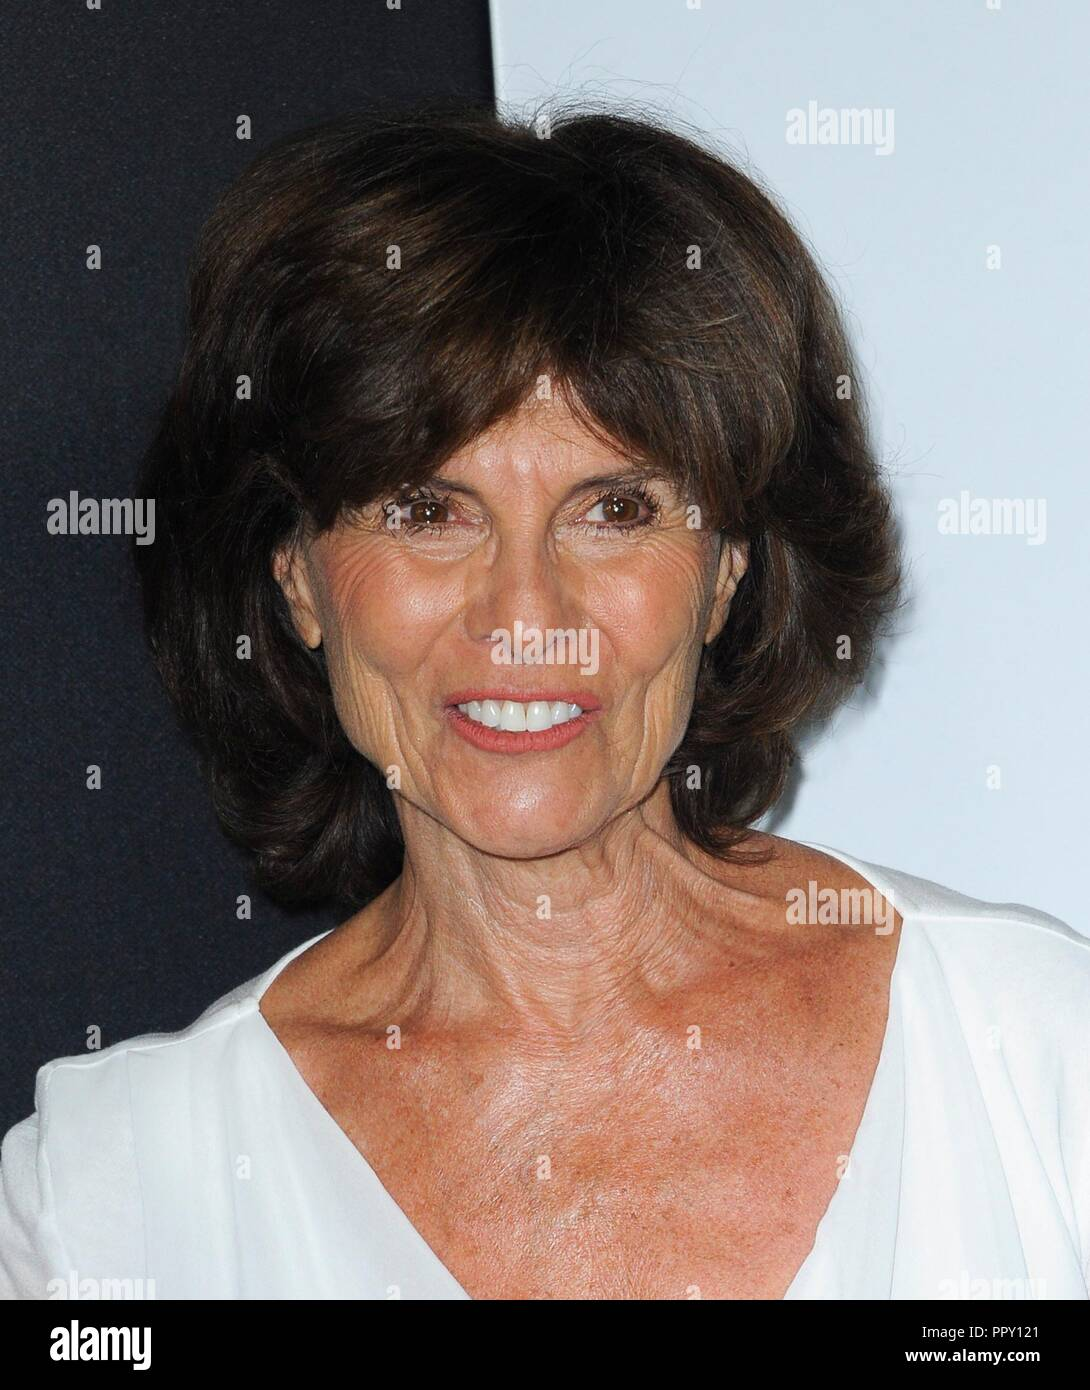 Adrienne Barbeau naked (47 photo) Gallery, YouTube, braless